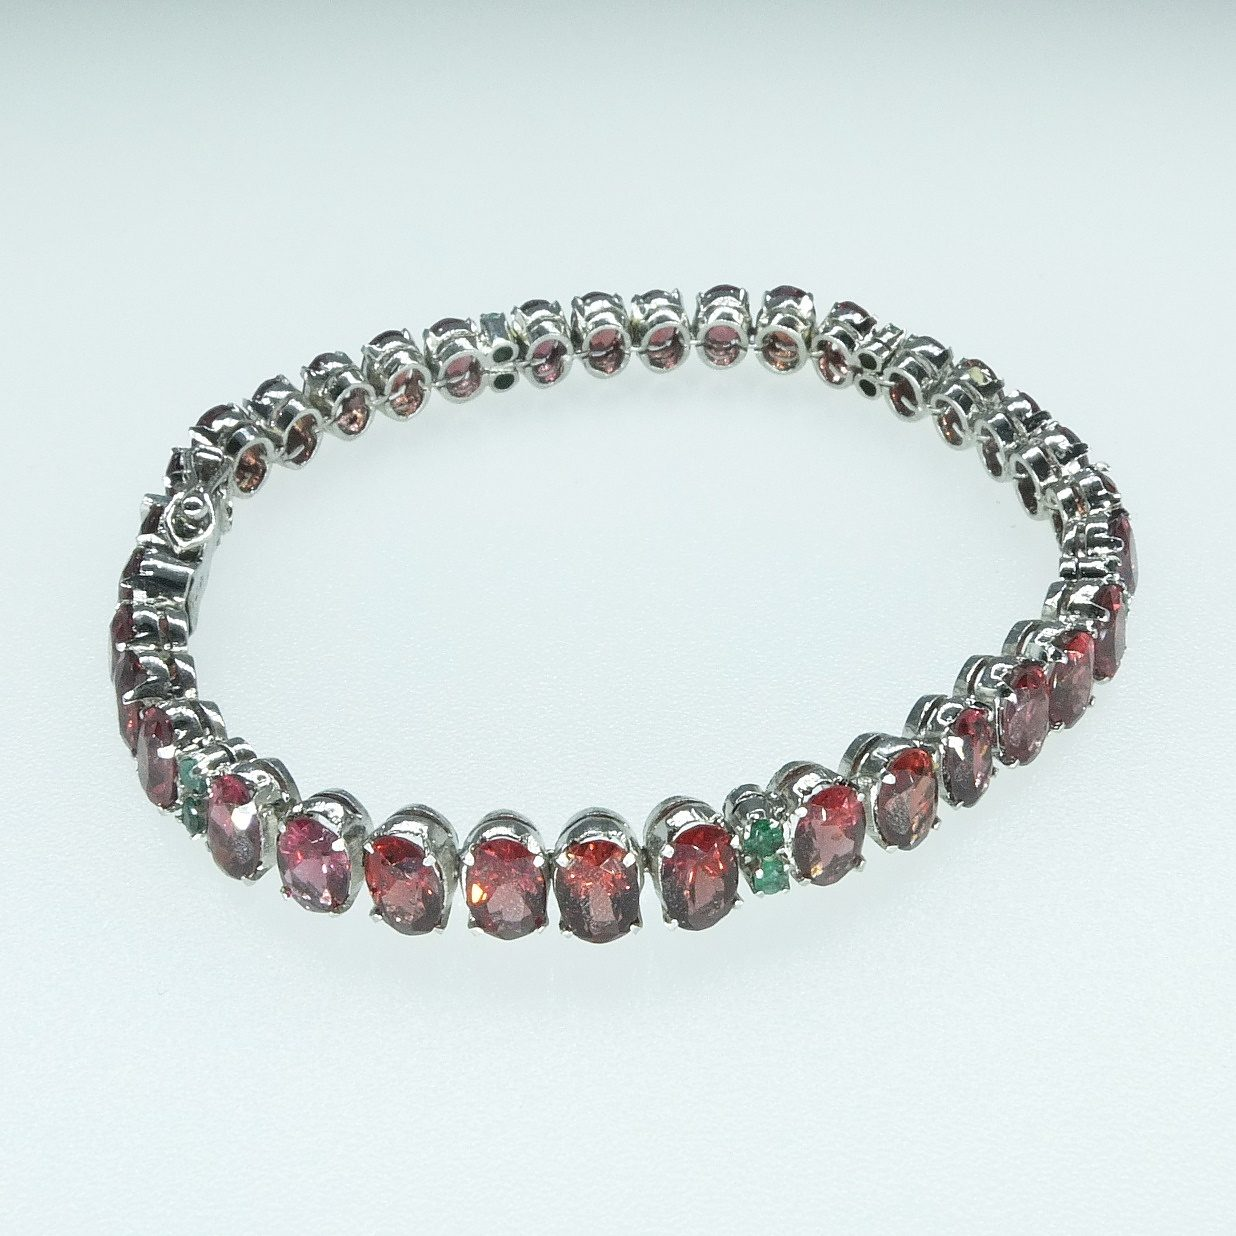 'Silver Tennis Bracelet with Oval Garnet and Small Round Emeralds'